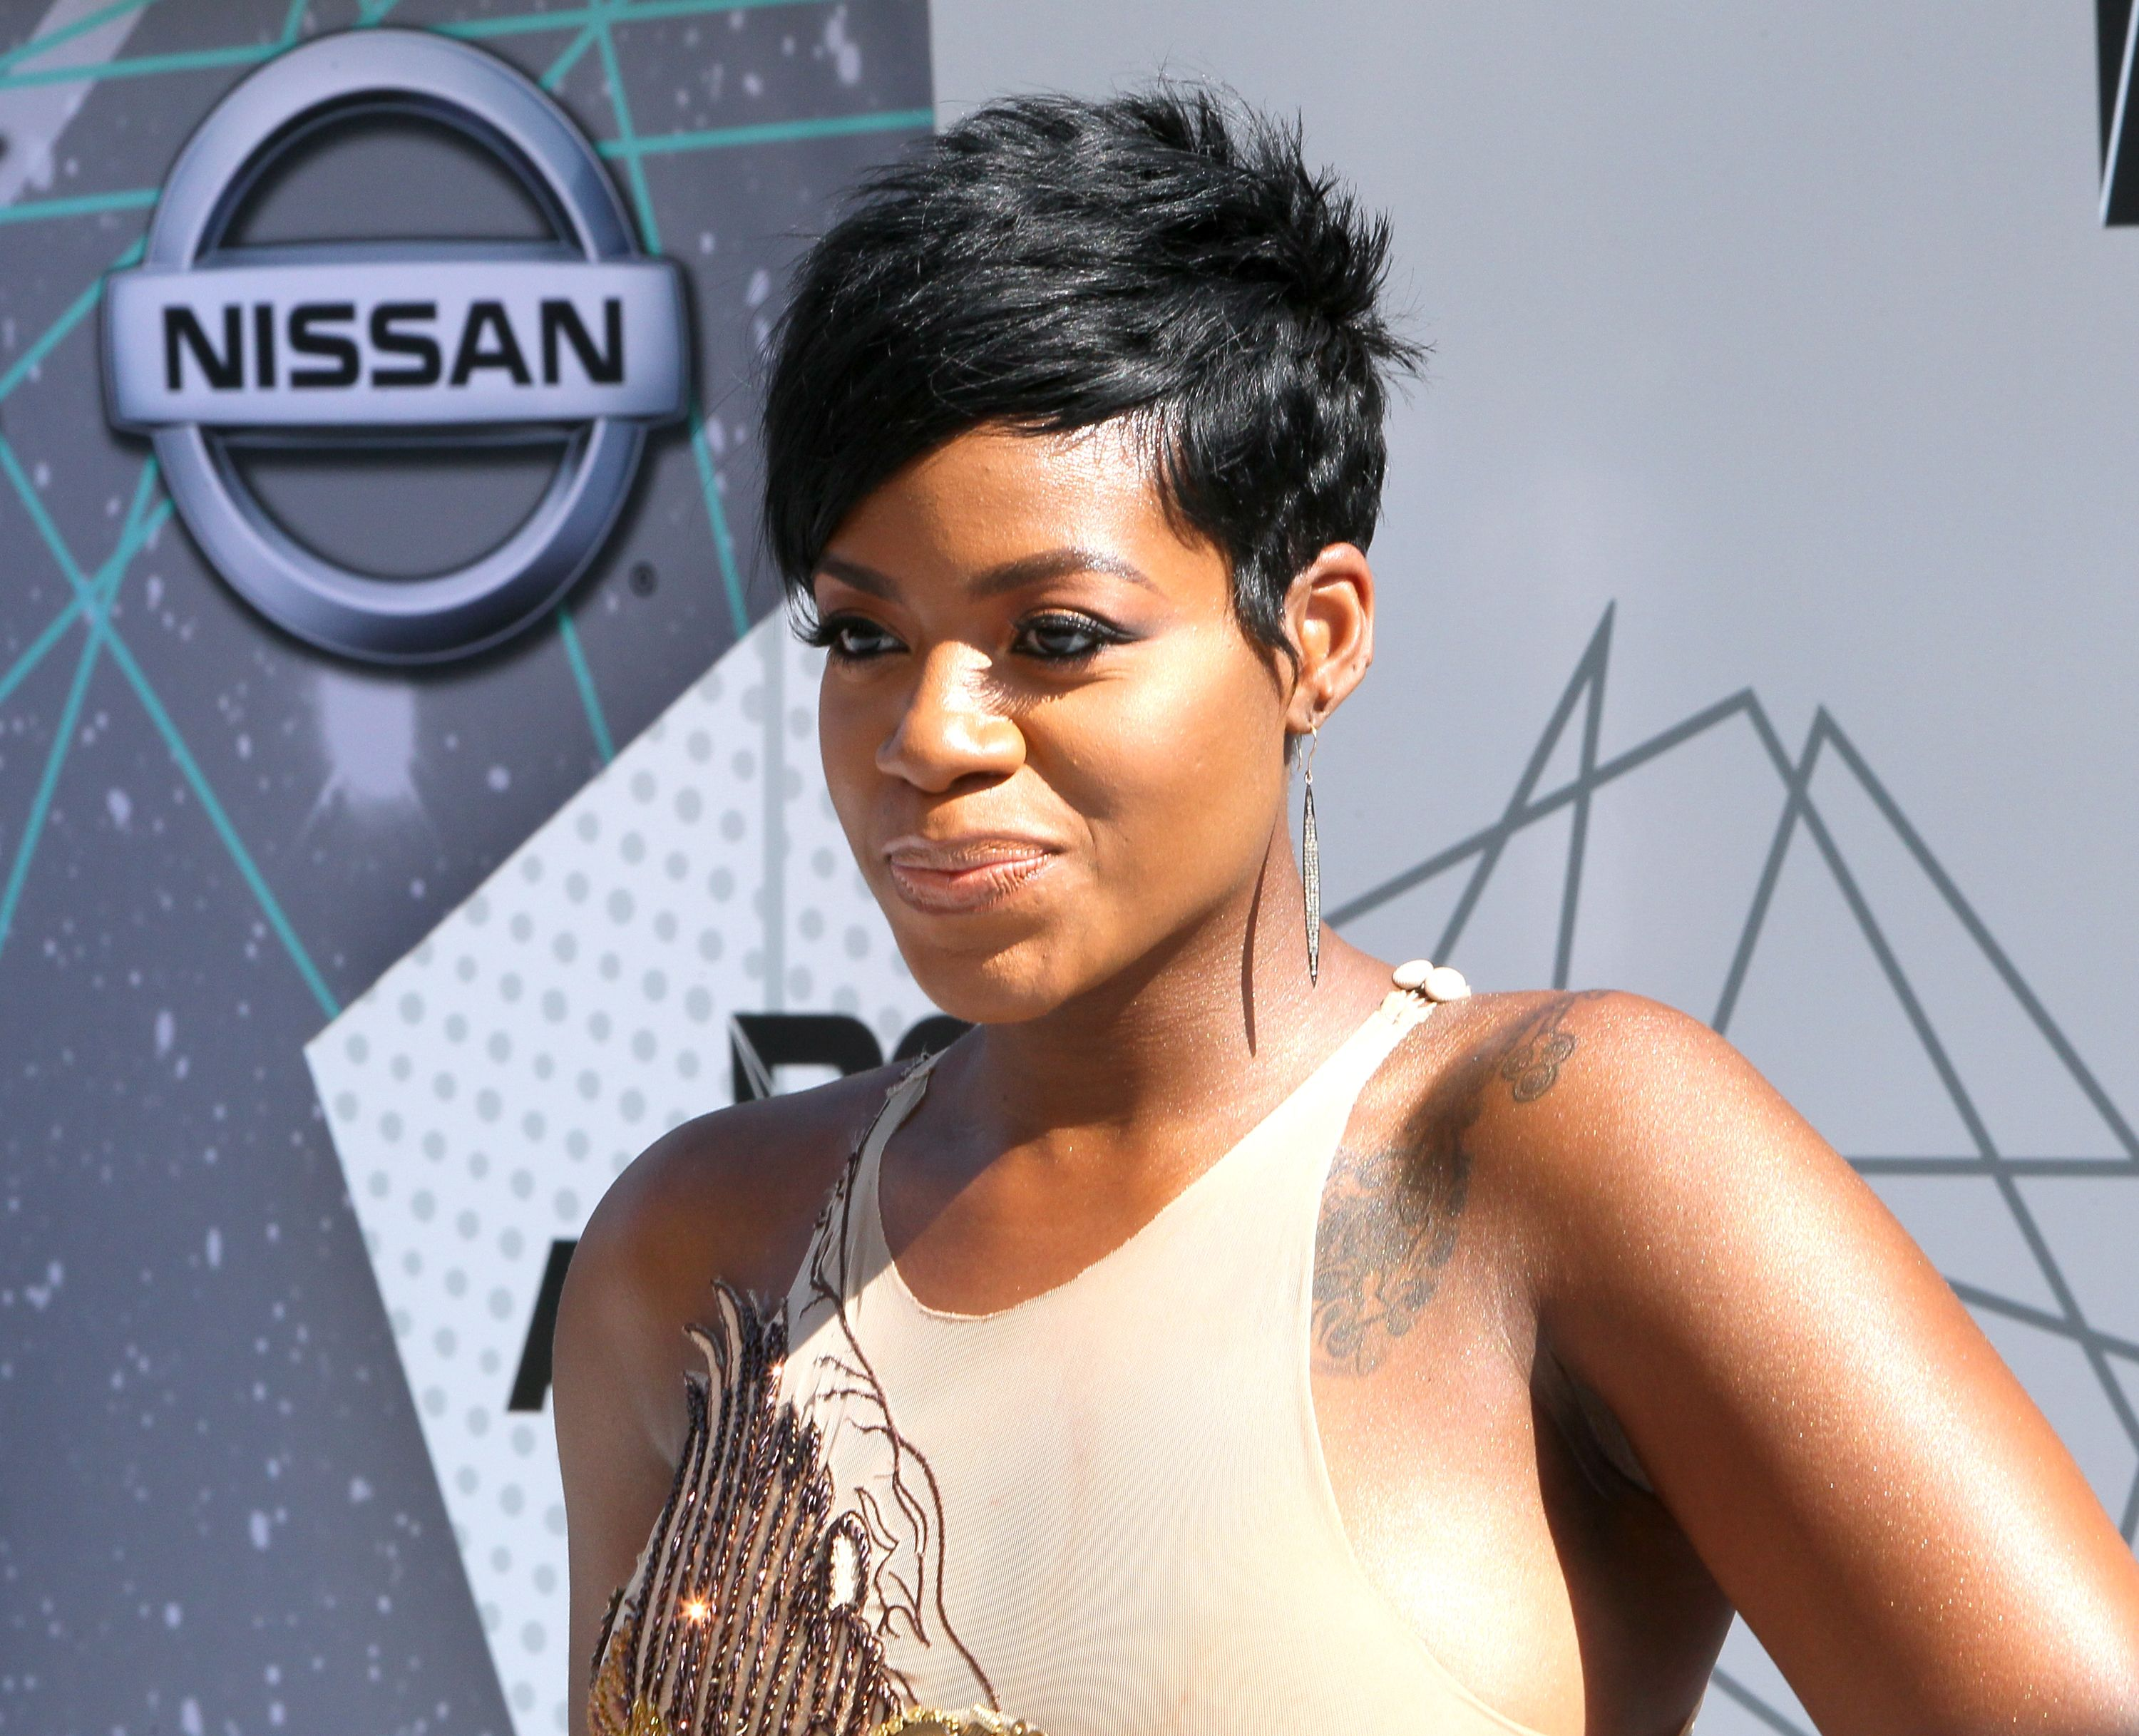 Singer Fantasia Barrino attends the 2016 BET Awards at Microsoft Theater on June 26, 2016 | Photo: Getty Images/GlobalImagesUkraine